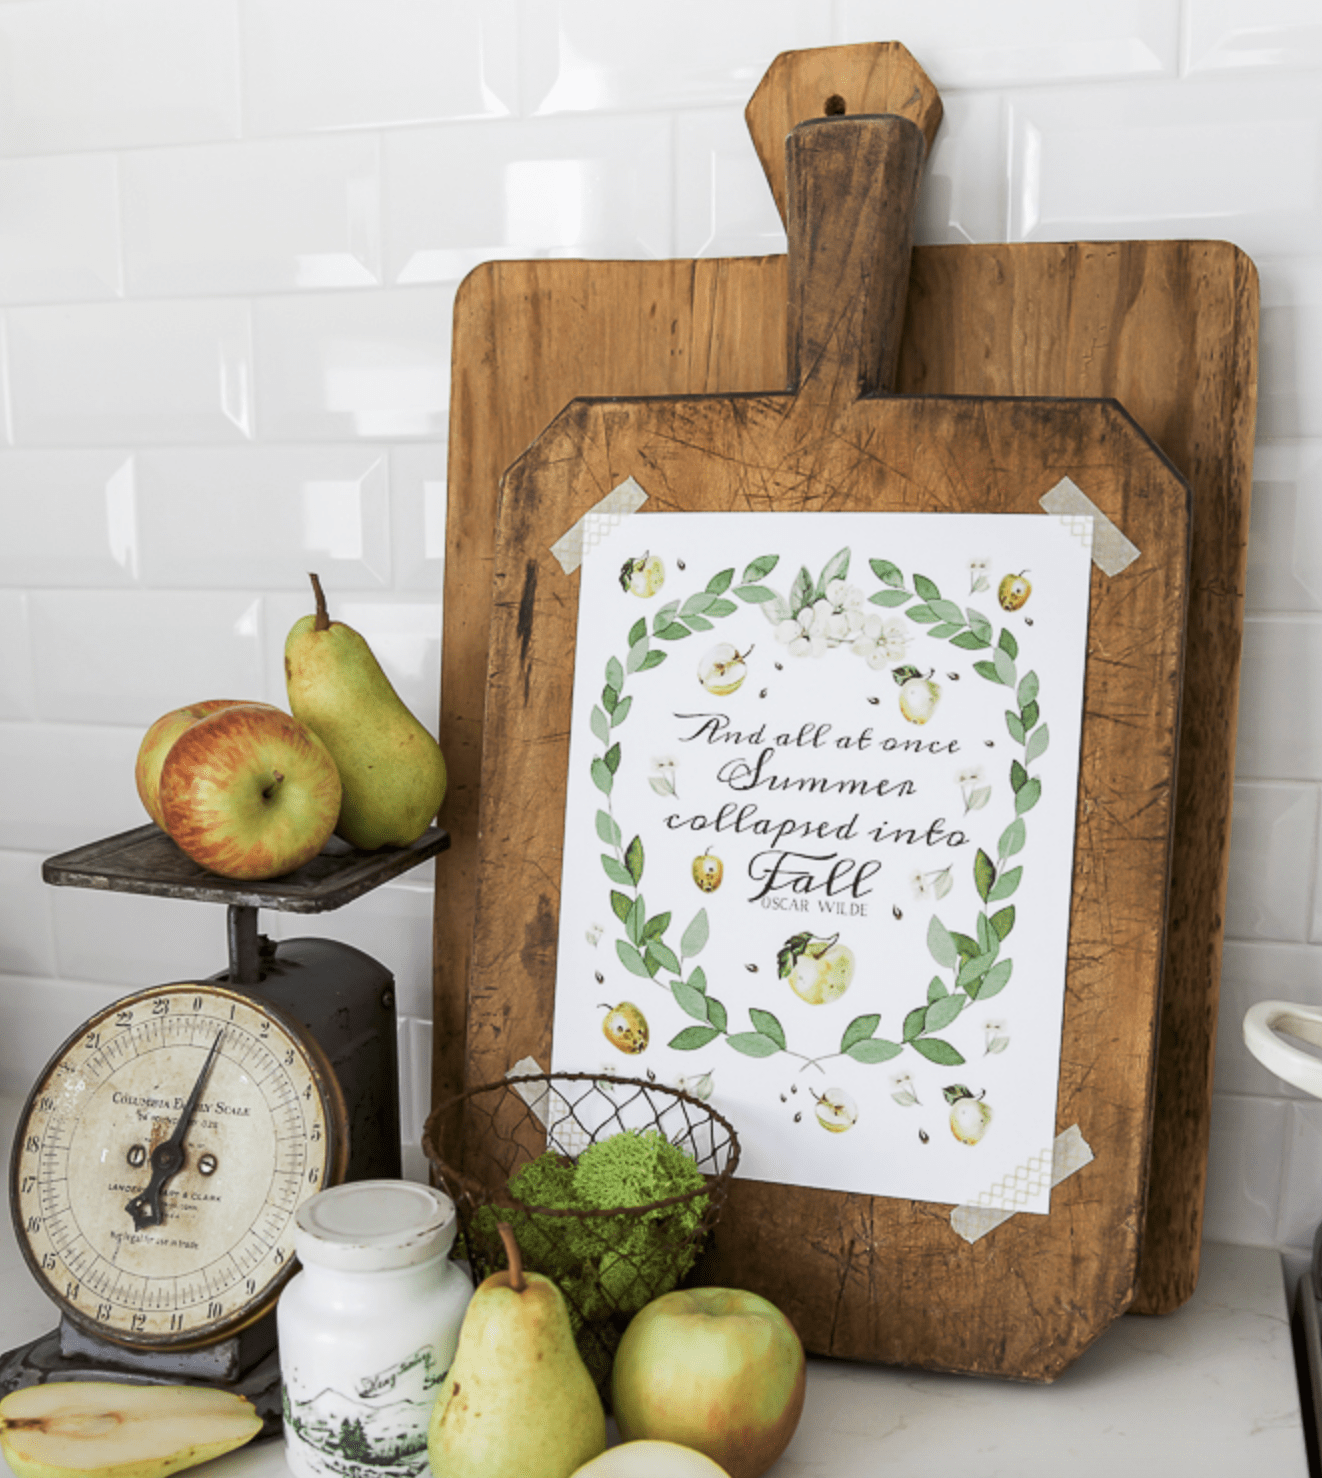 This adorable quote on the kitchen cutting boards is a sweet addition.